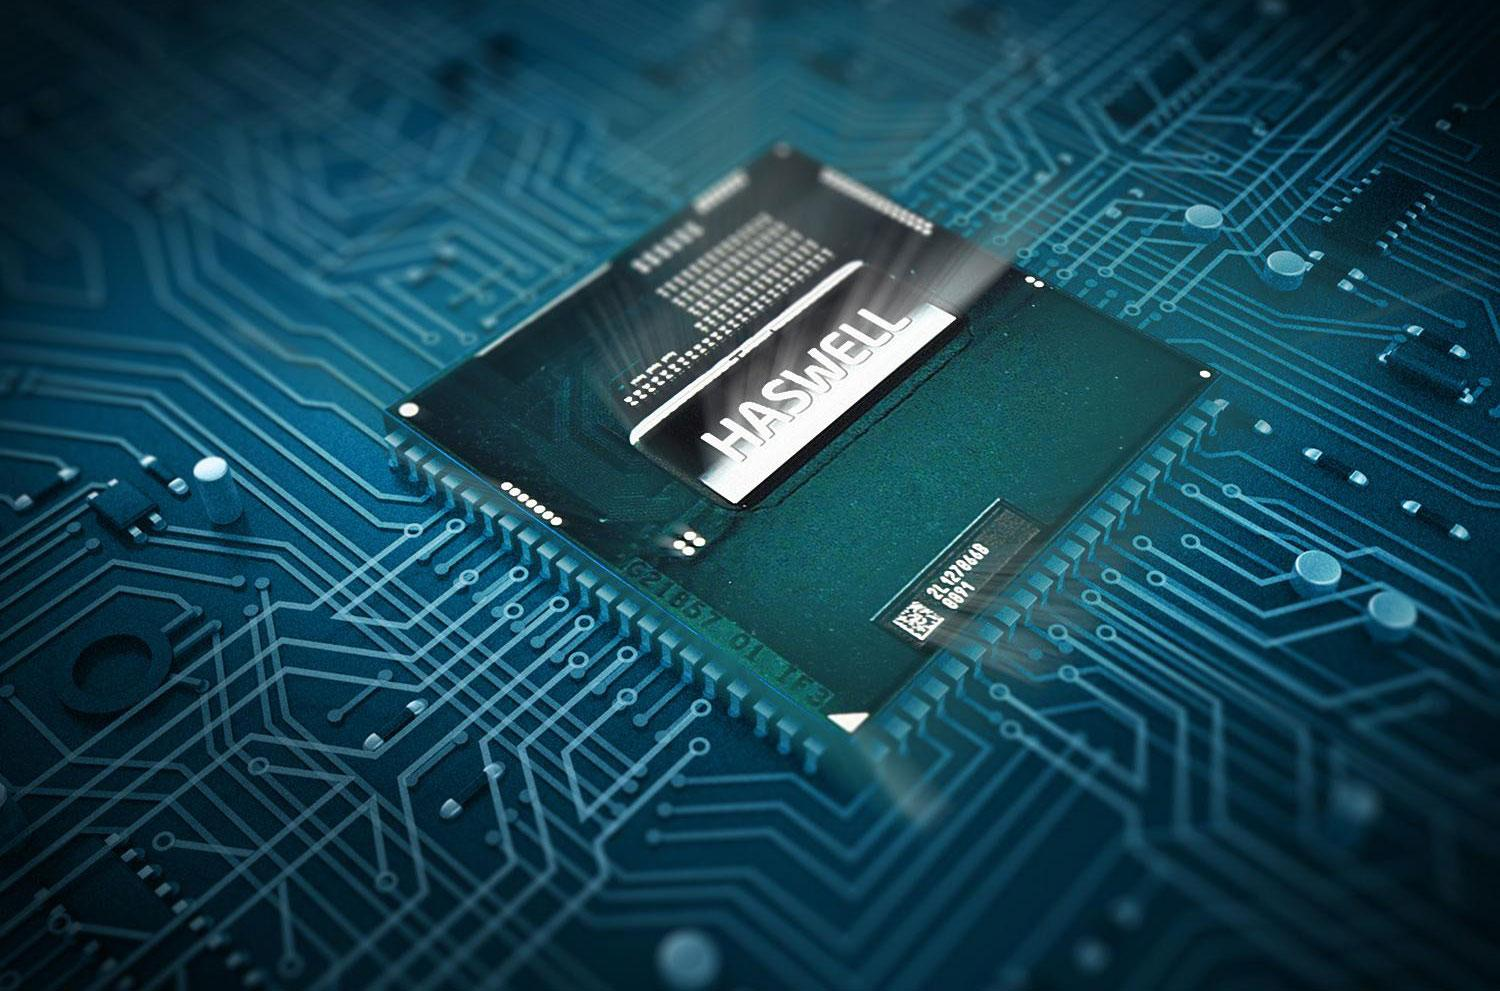 Processor Chip Computer Wallpaper Background Wallpapers 1500x991